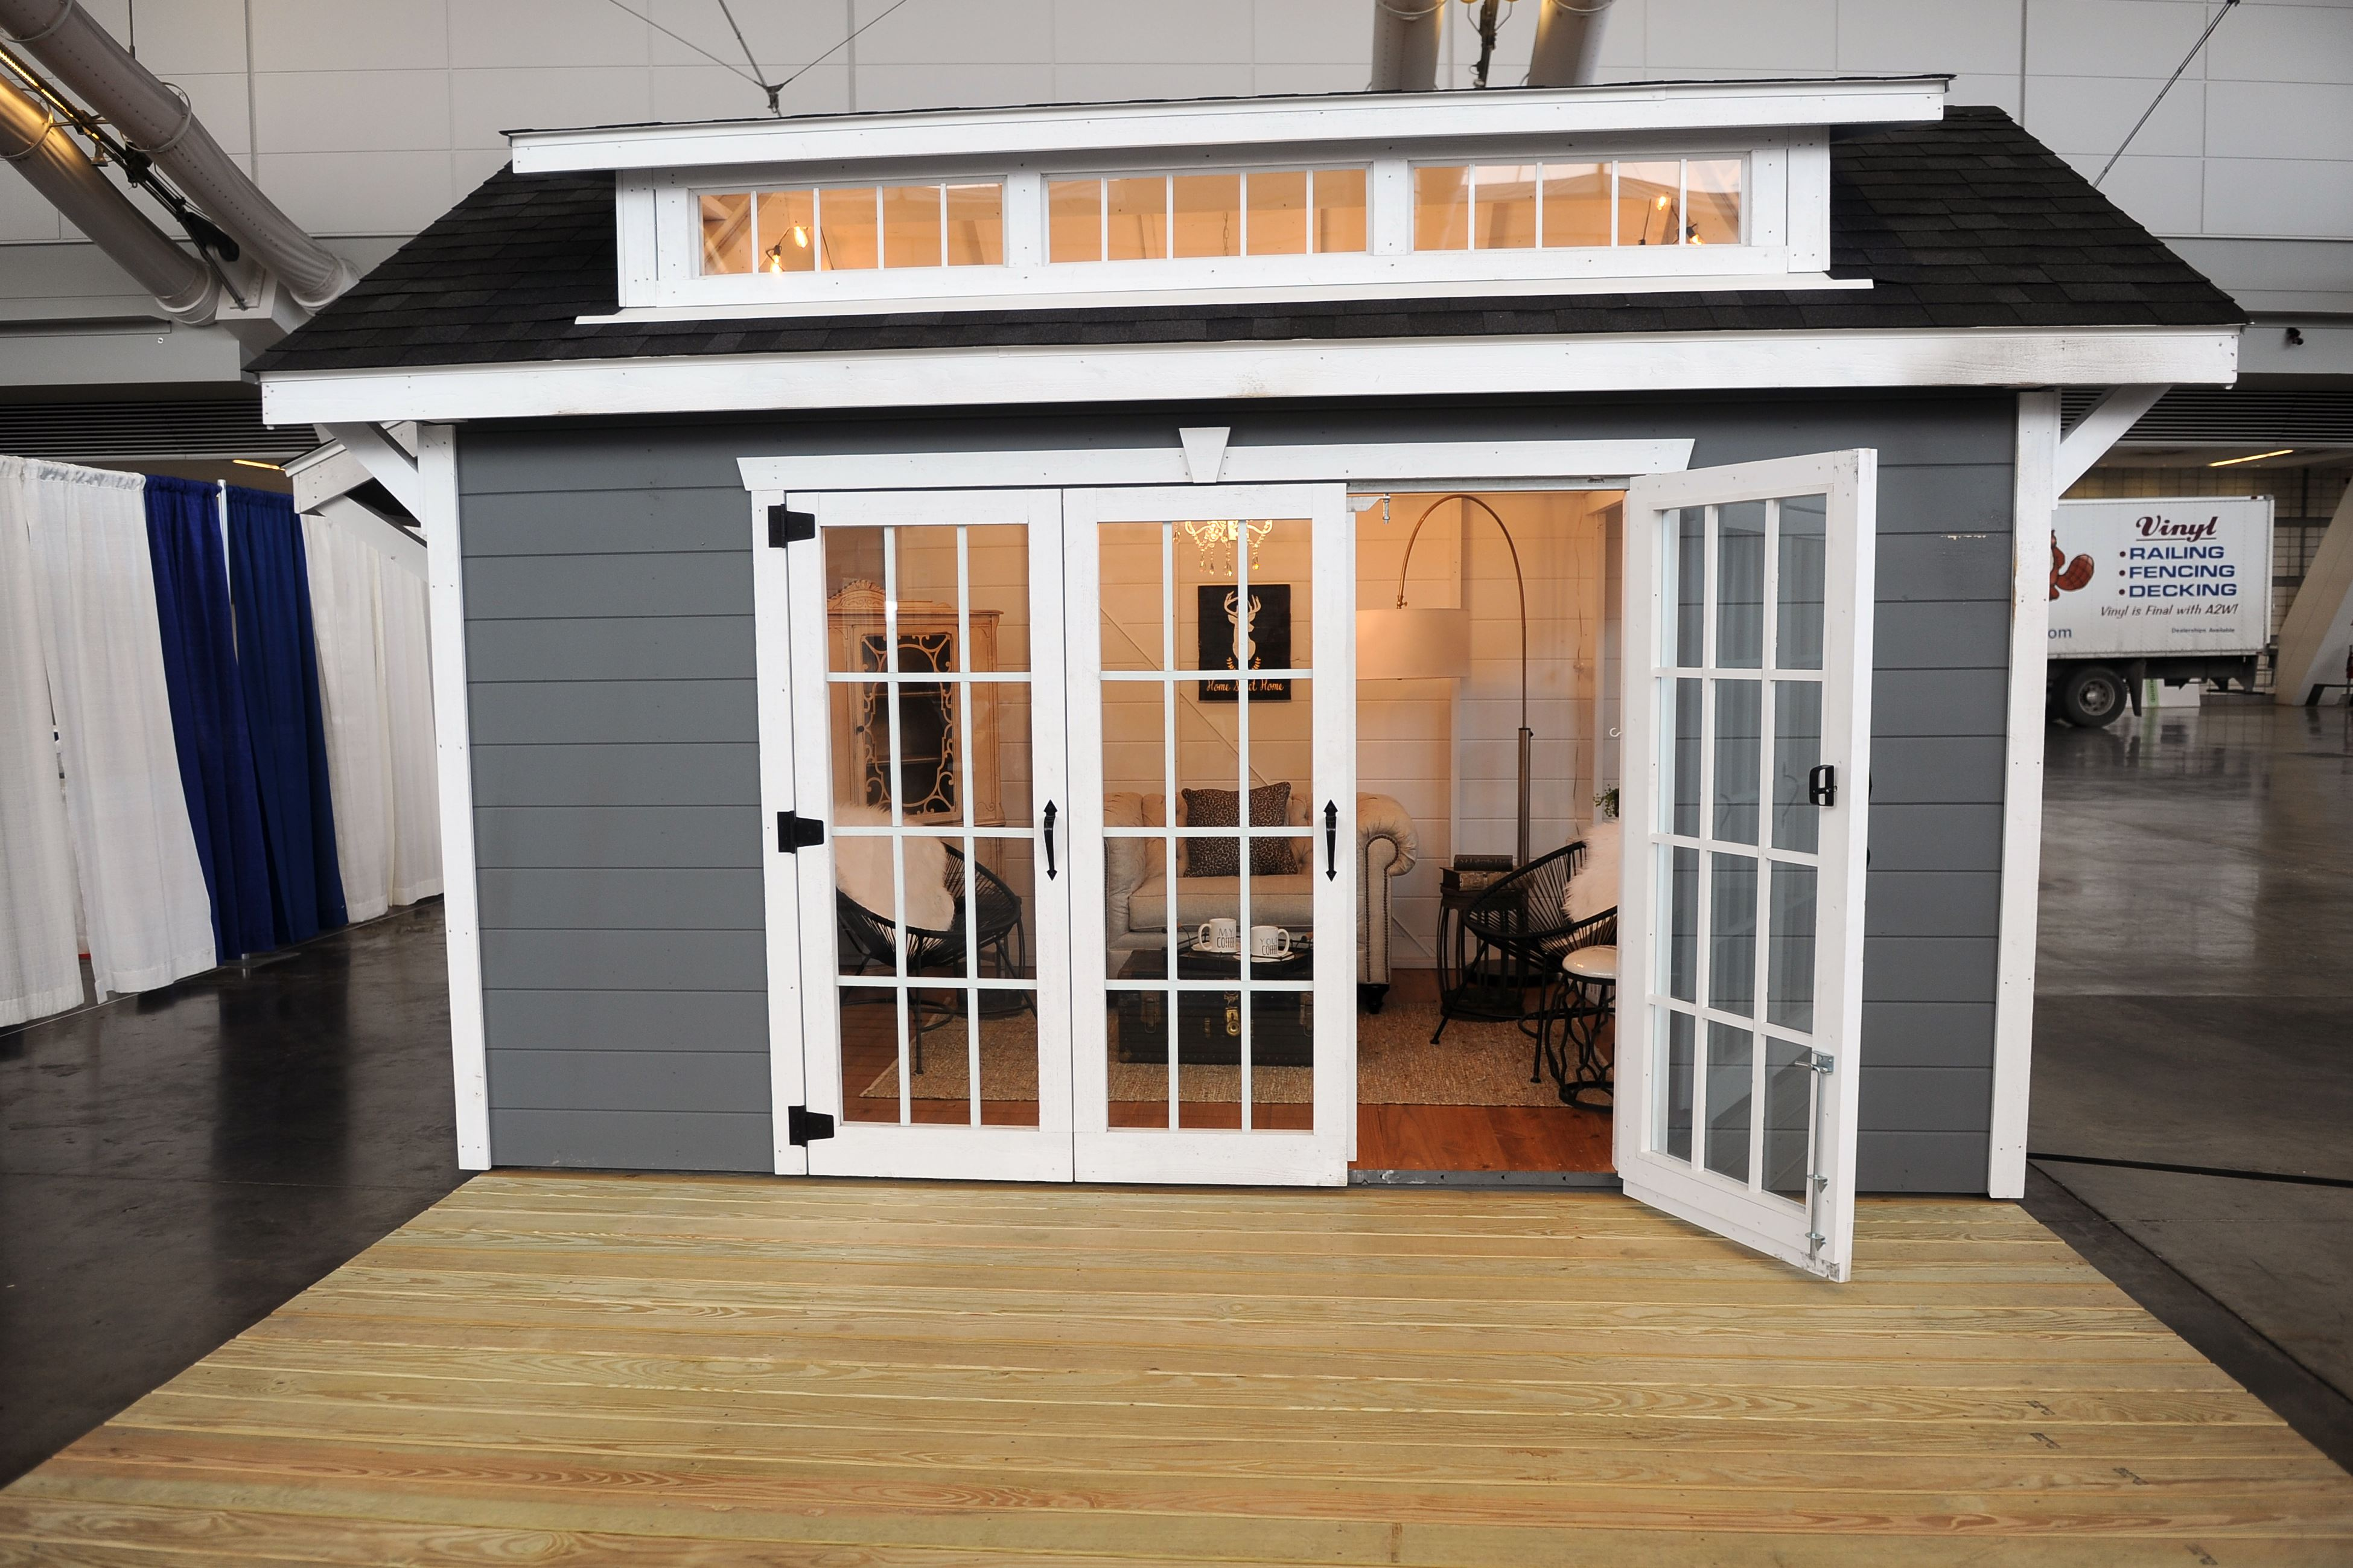 Man Caves And She Sheds : Move over man cave hello she shed pittsburgh post gazette